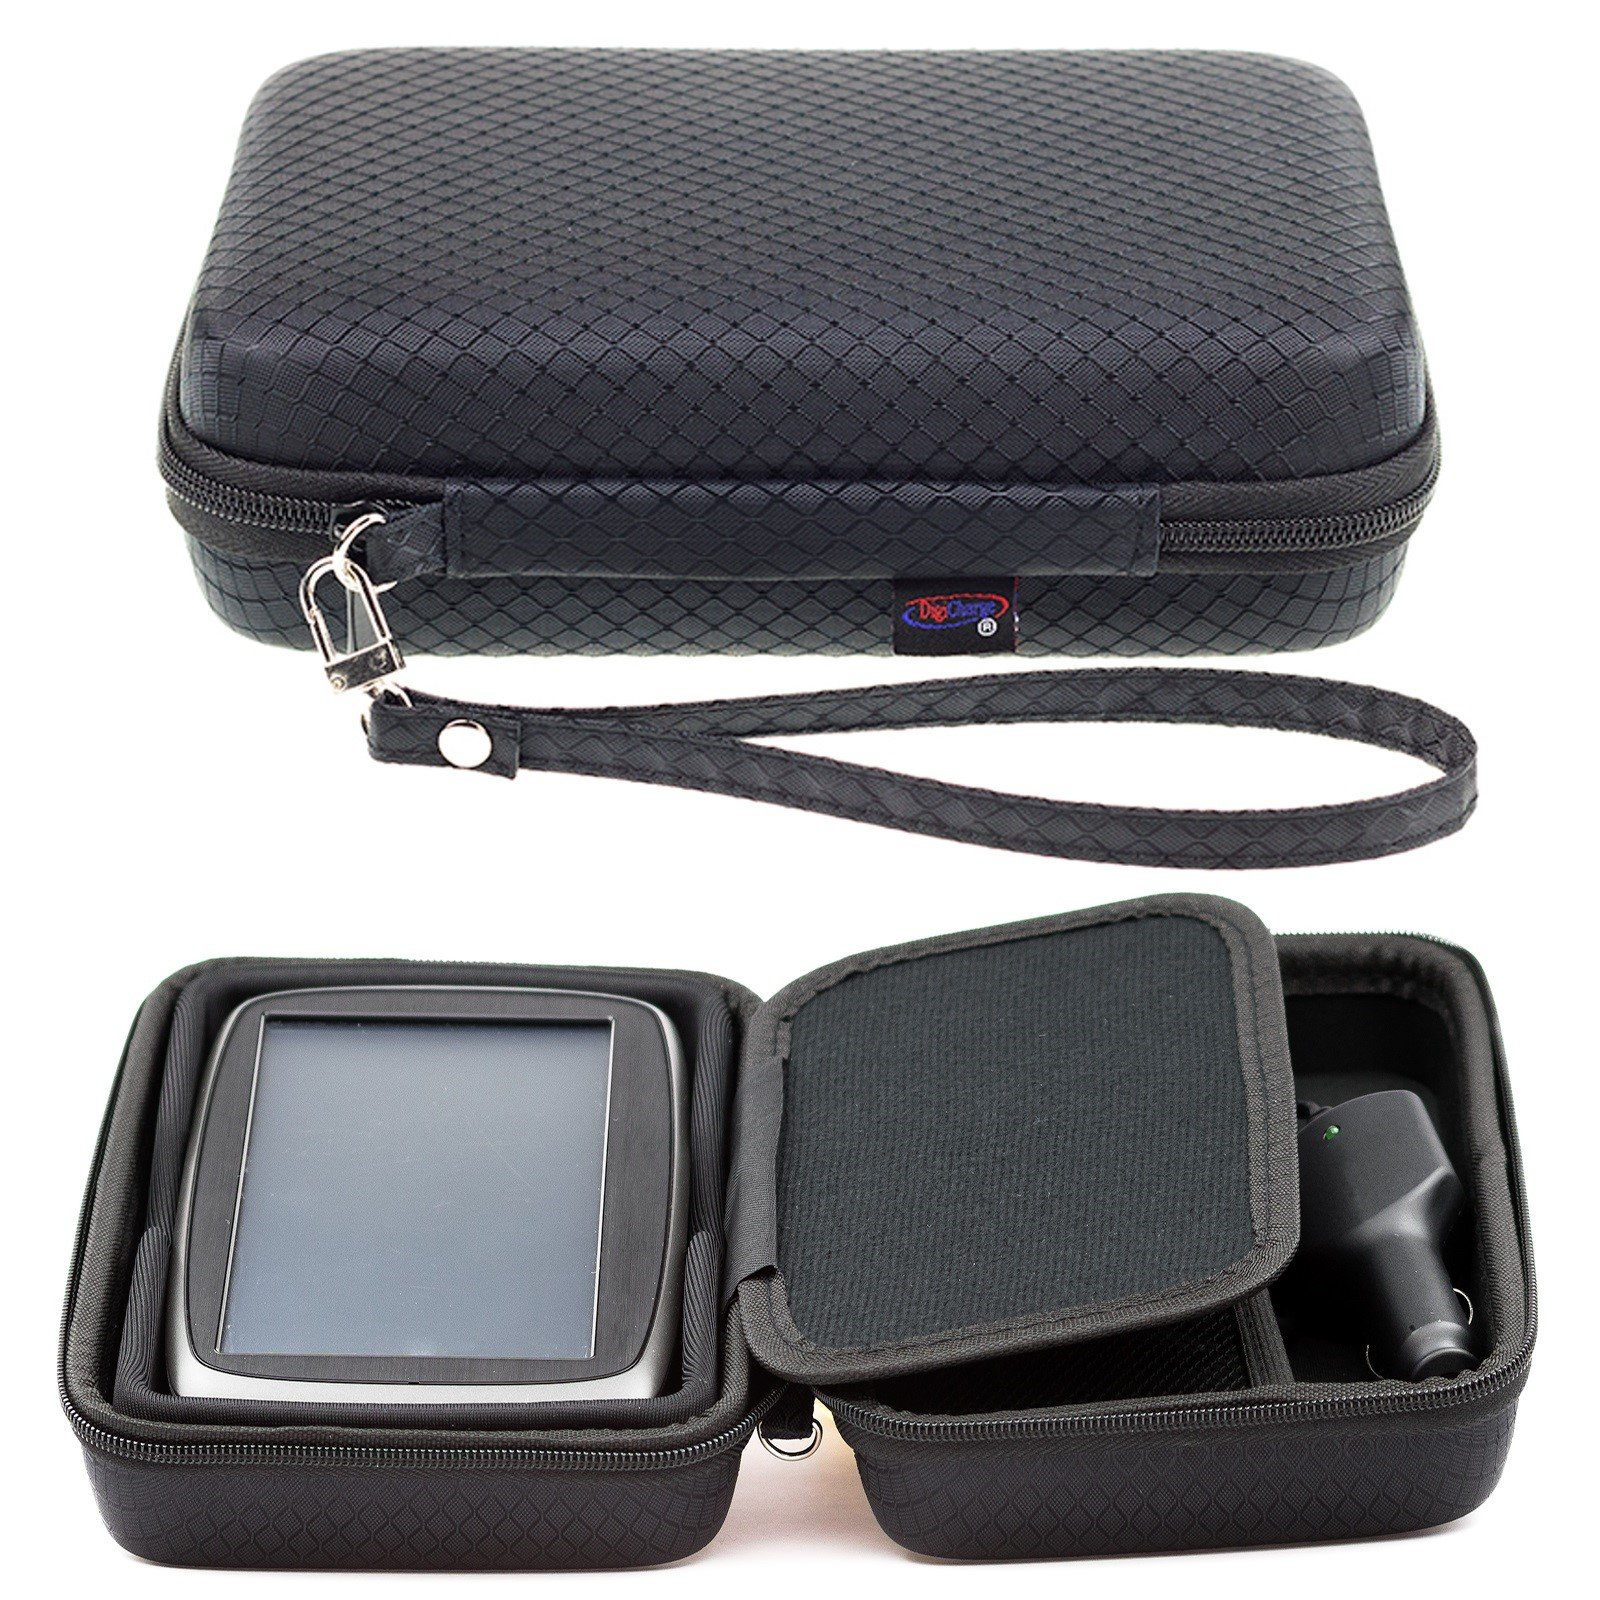 Digicharge Hard Carrying Case for TomTom Via 1625 1625M 1625TM Go 620 Trucker 620 6-Inch GPS With Accessory Storage and Lanyard - Black